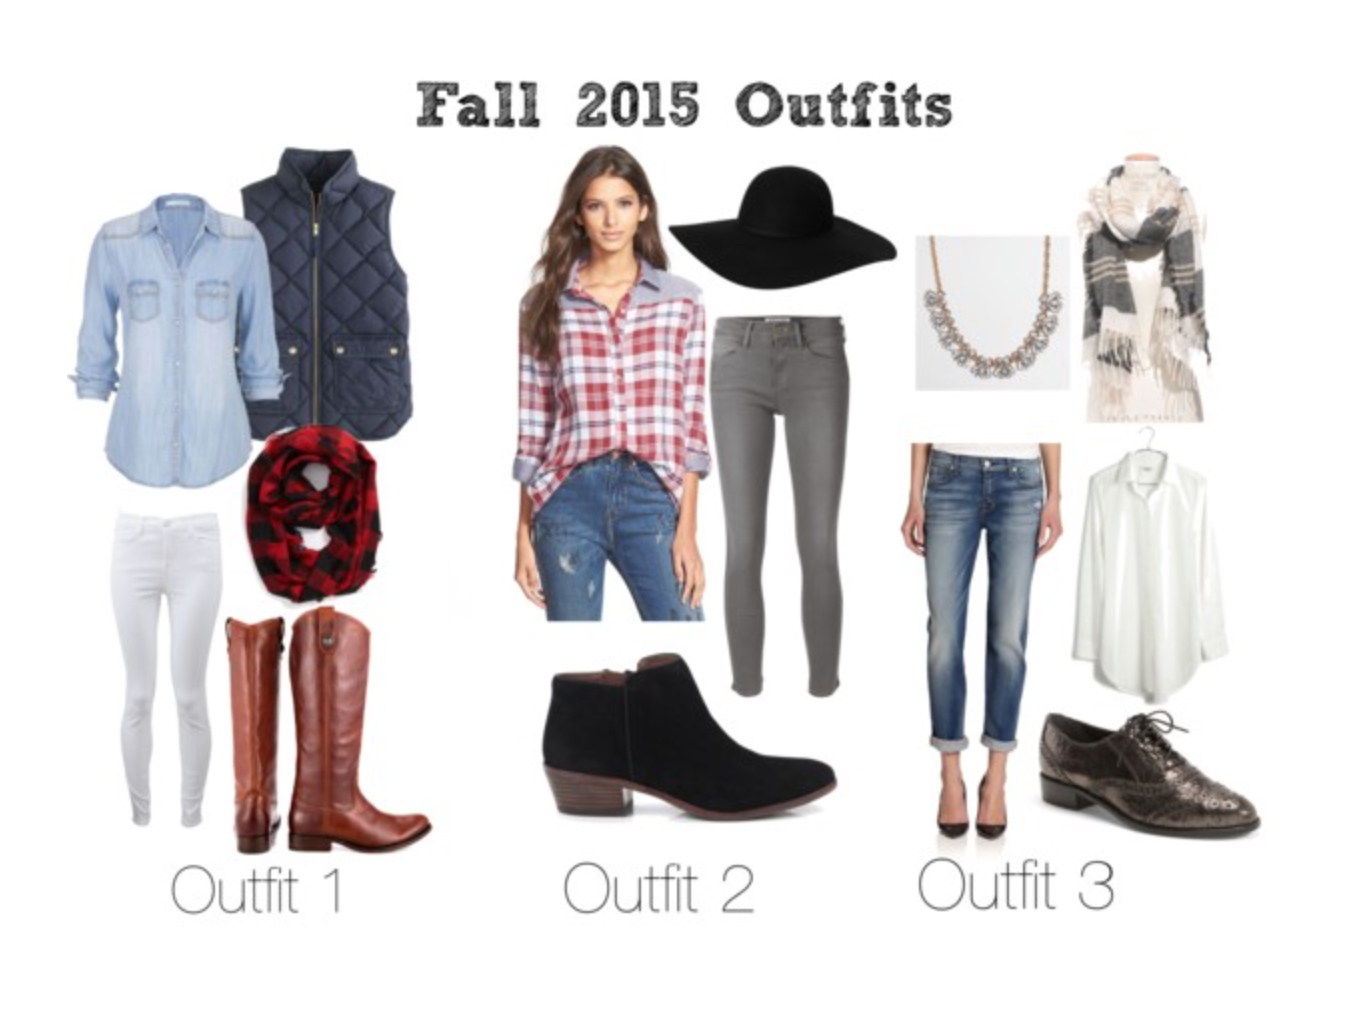 494dadc6fc Outfit Ideas for Fall 2015 - Fall Fashion - Petite Haus